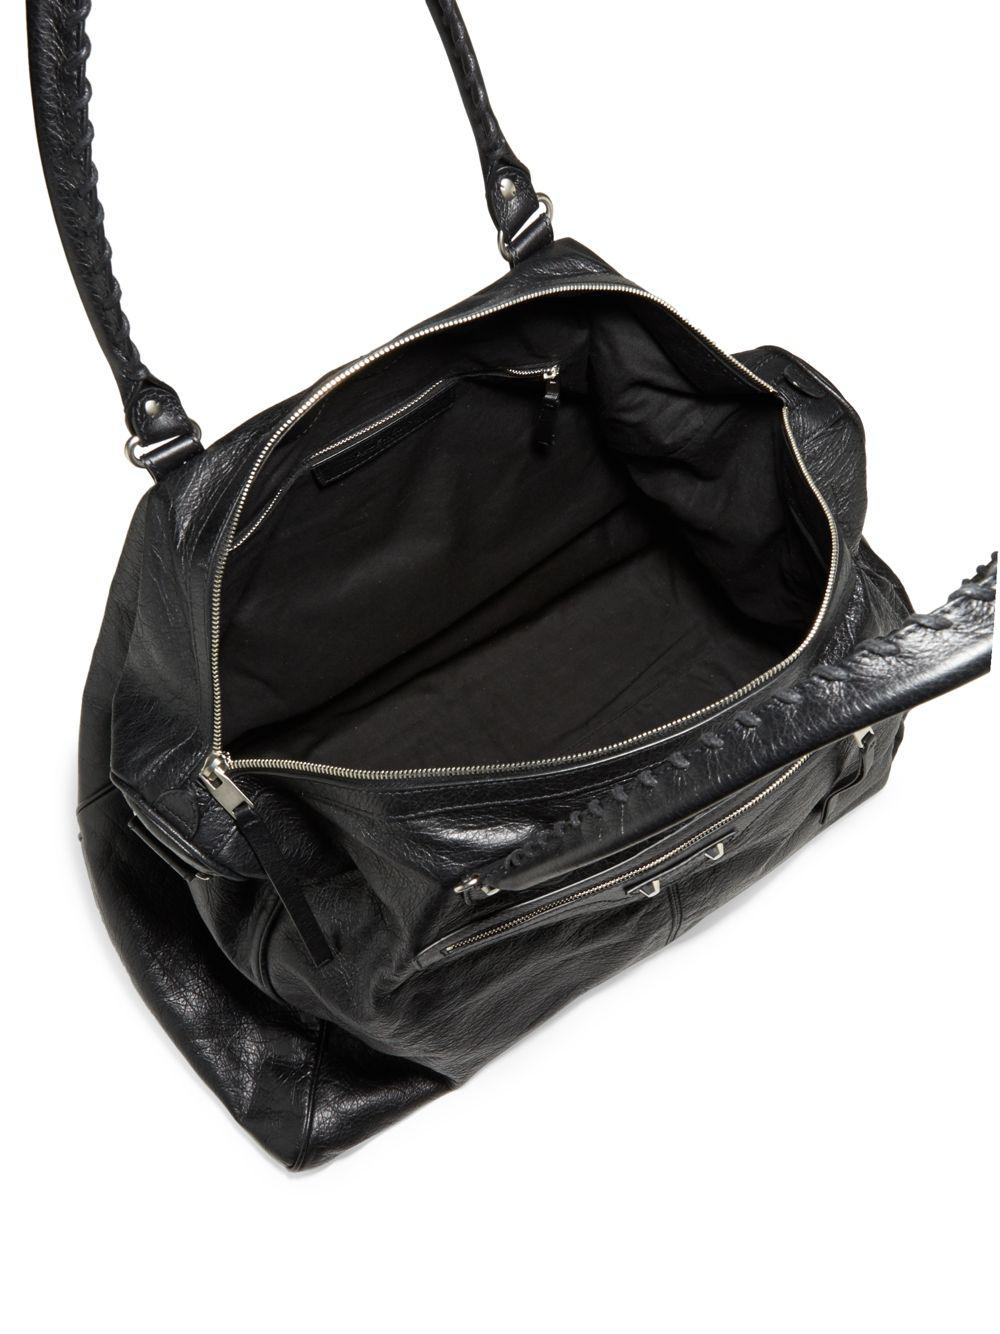 Balenciaga Black Arena Leather Weekender Bag Lyst View Fullscreen